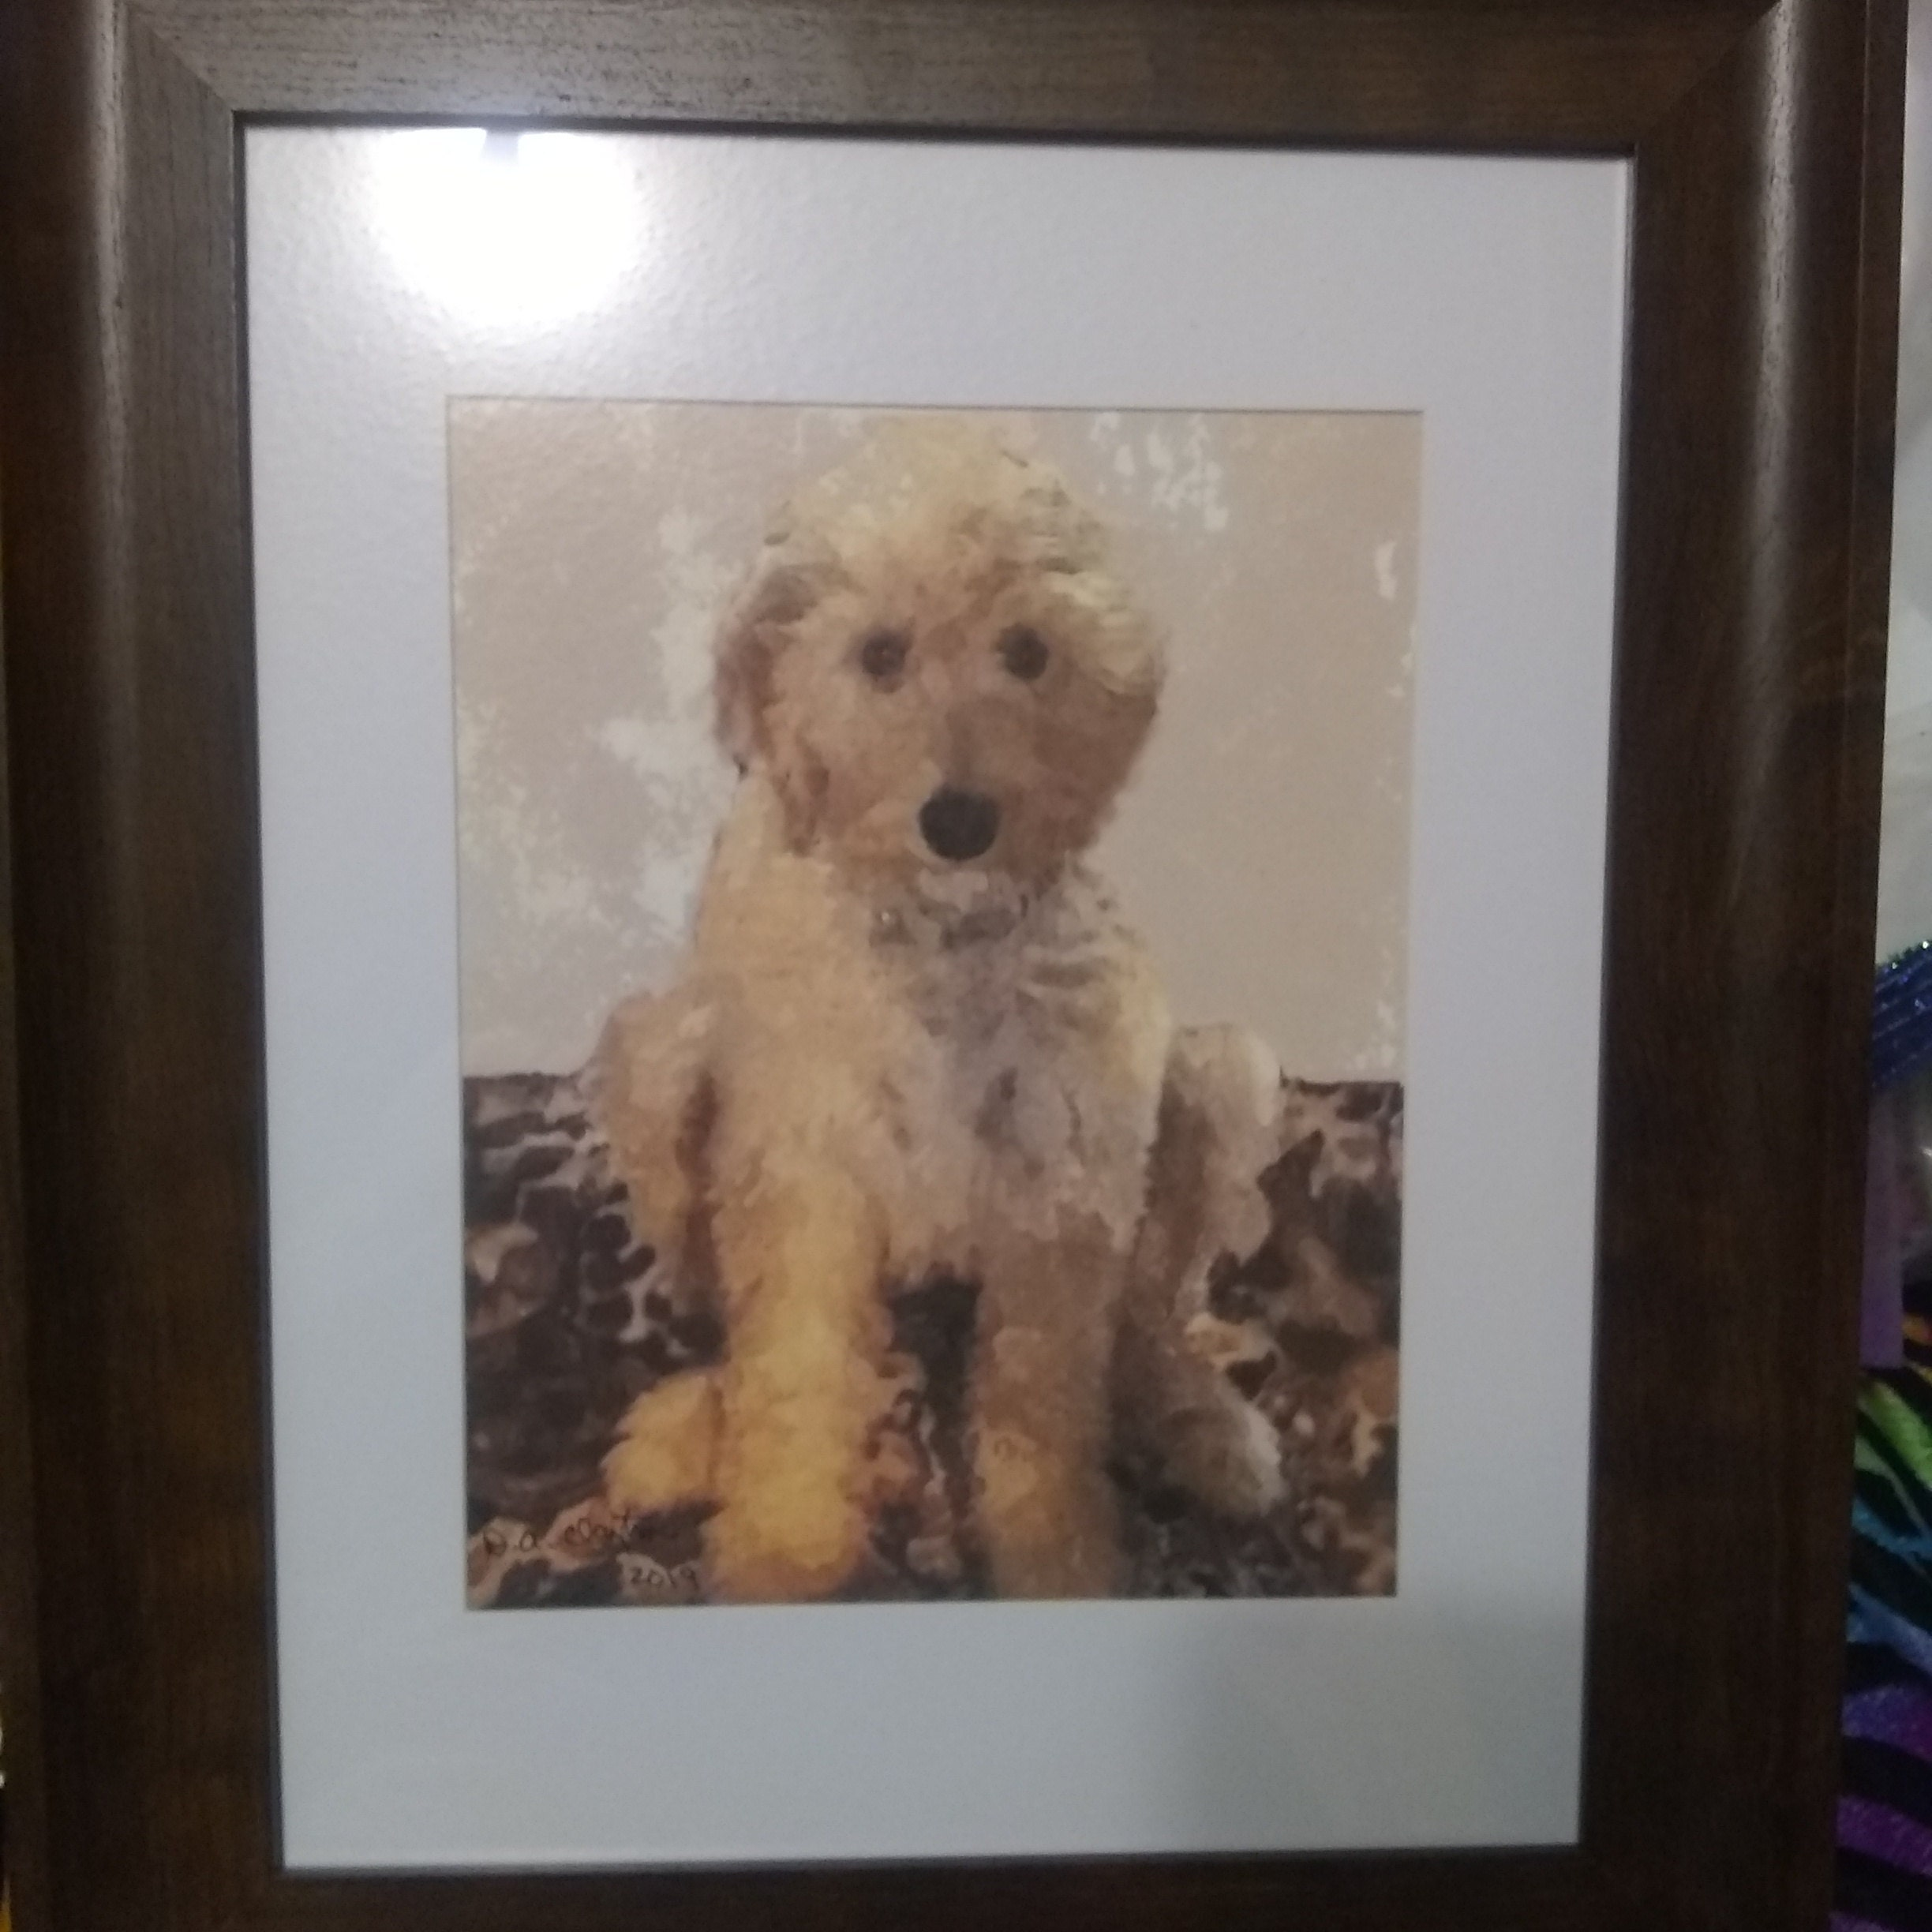 CATHI BLACKMON added a photo of their purchase